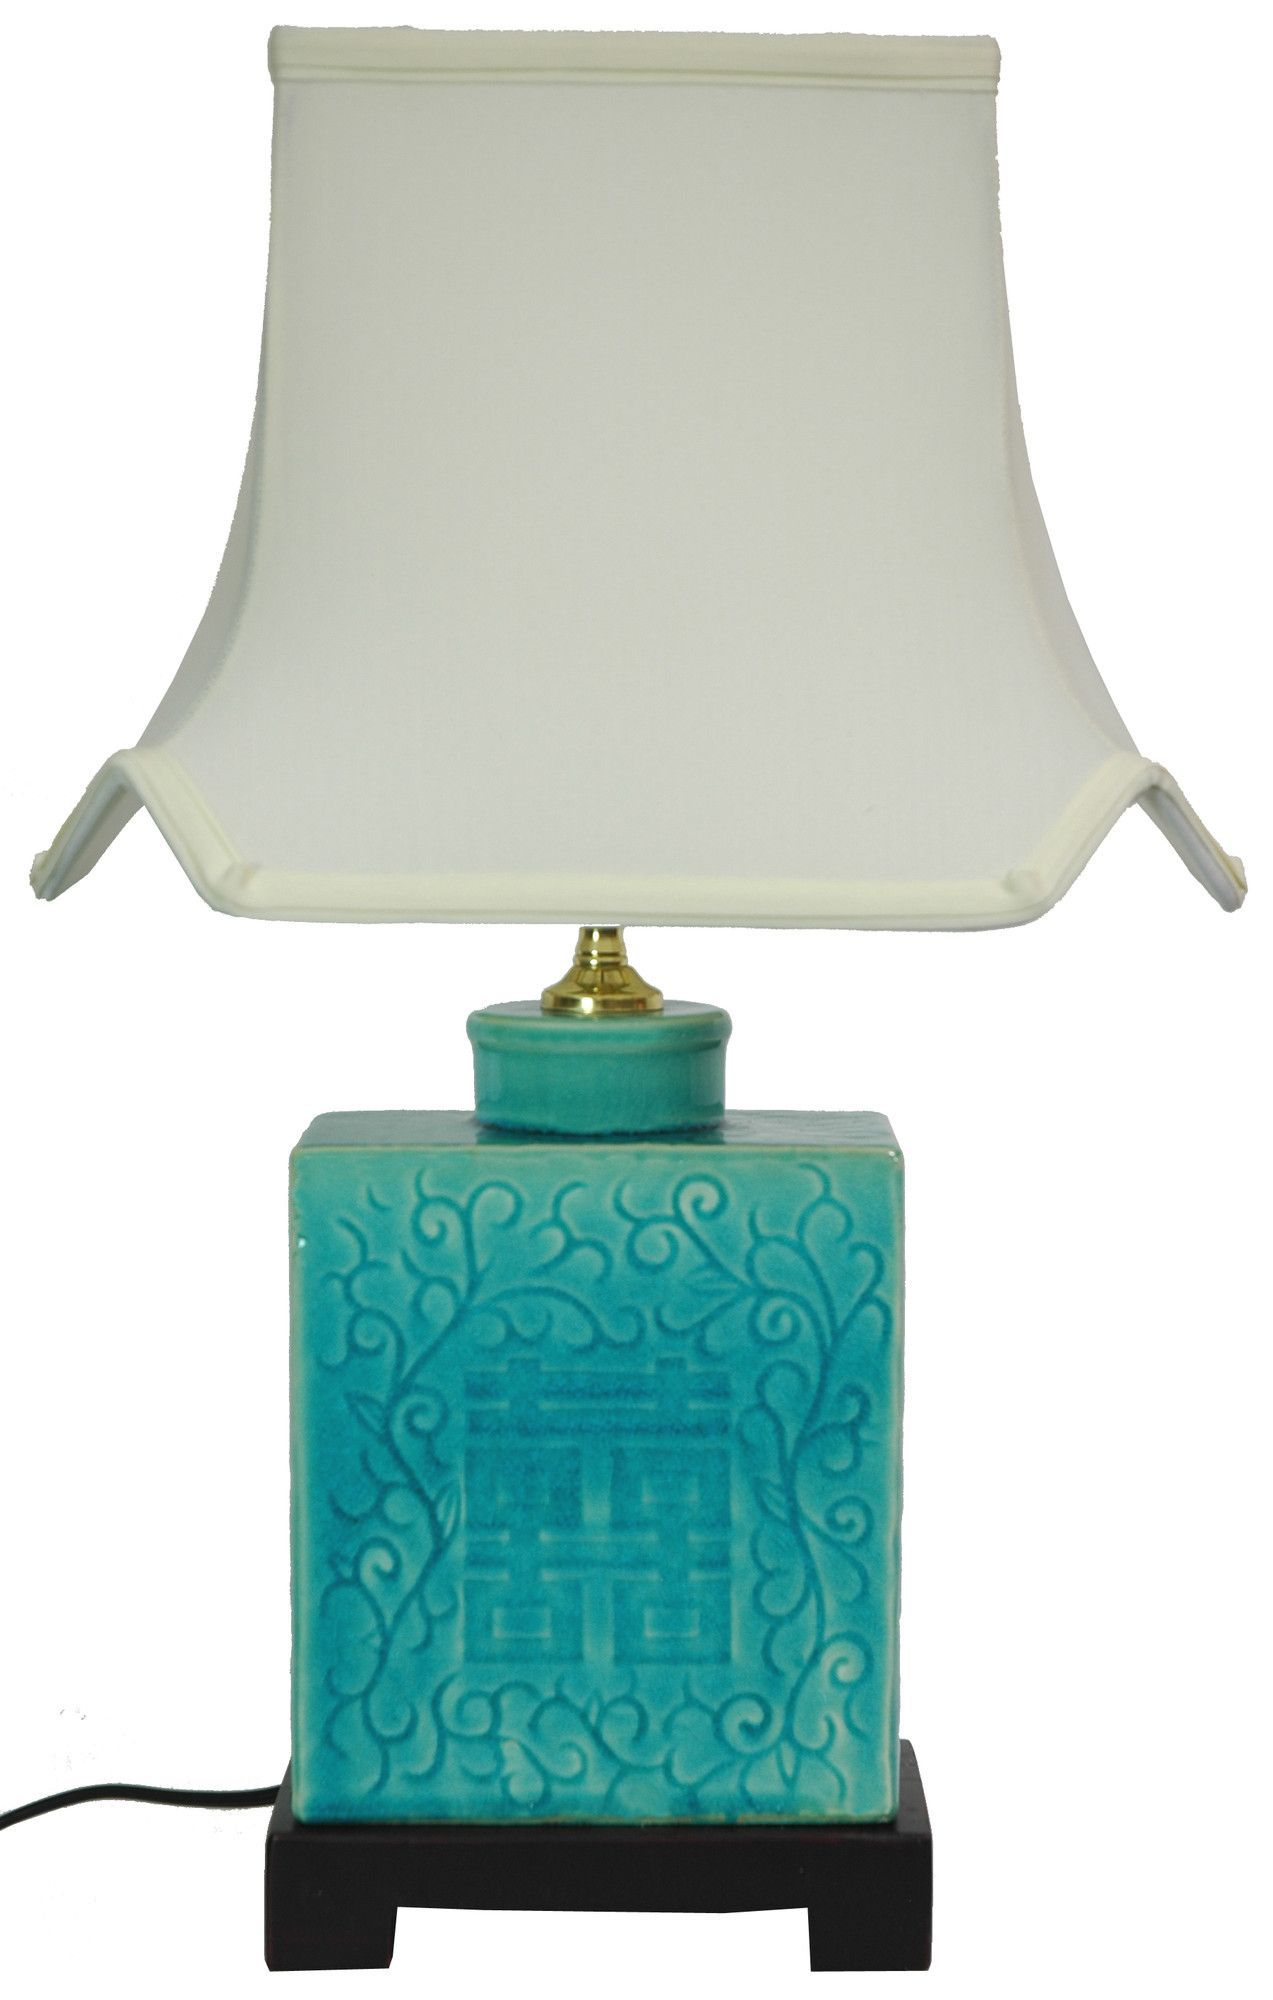 "20.5"" H Table Lamp with Bell Shade Бирюзовая лампа"